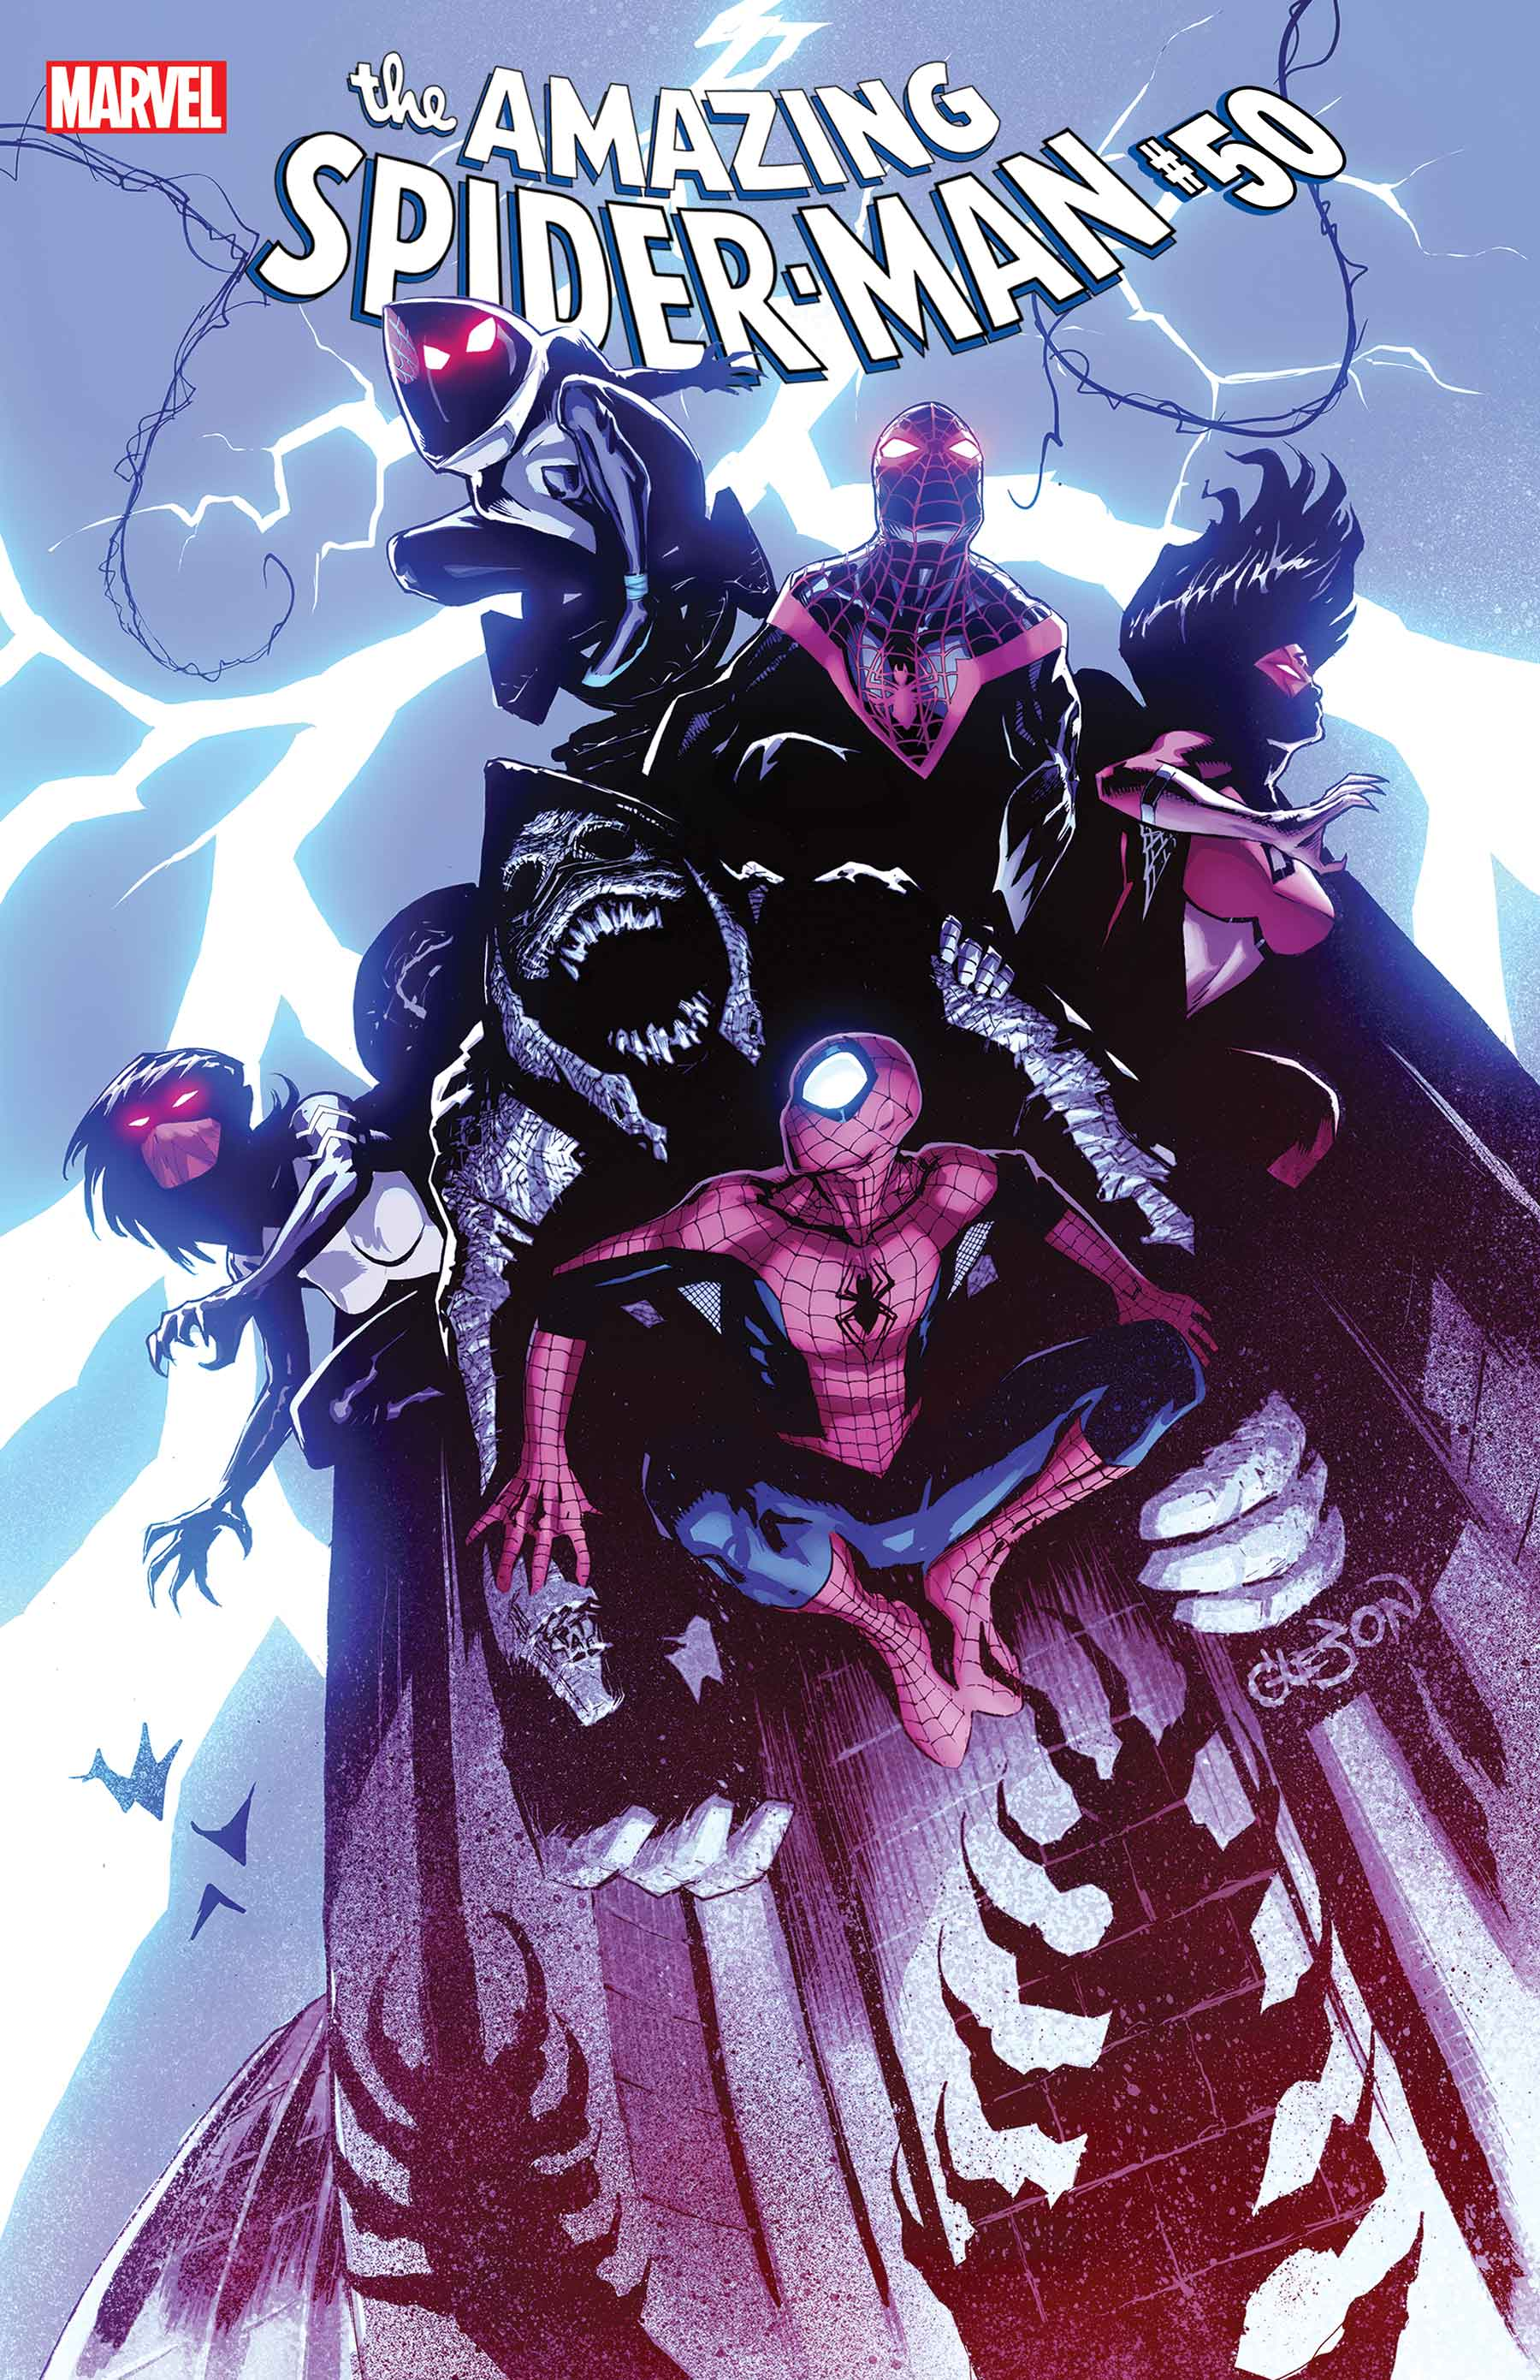 The Amazing Spider-Man (2018) #50